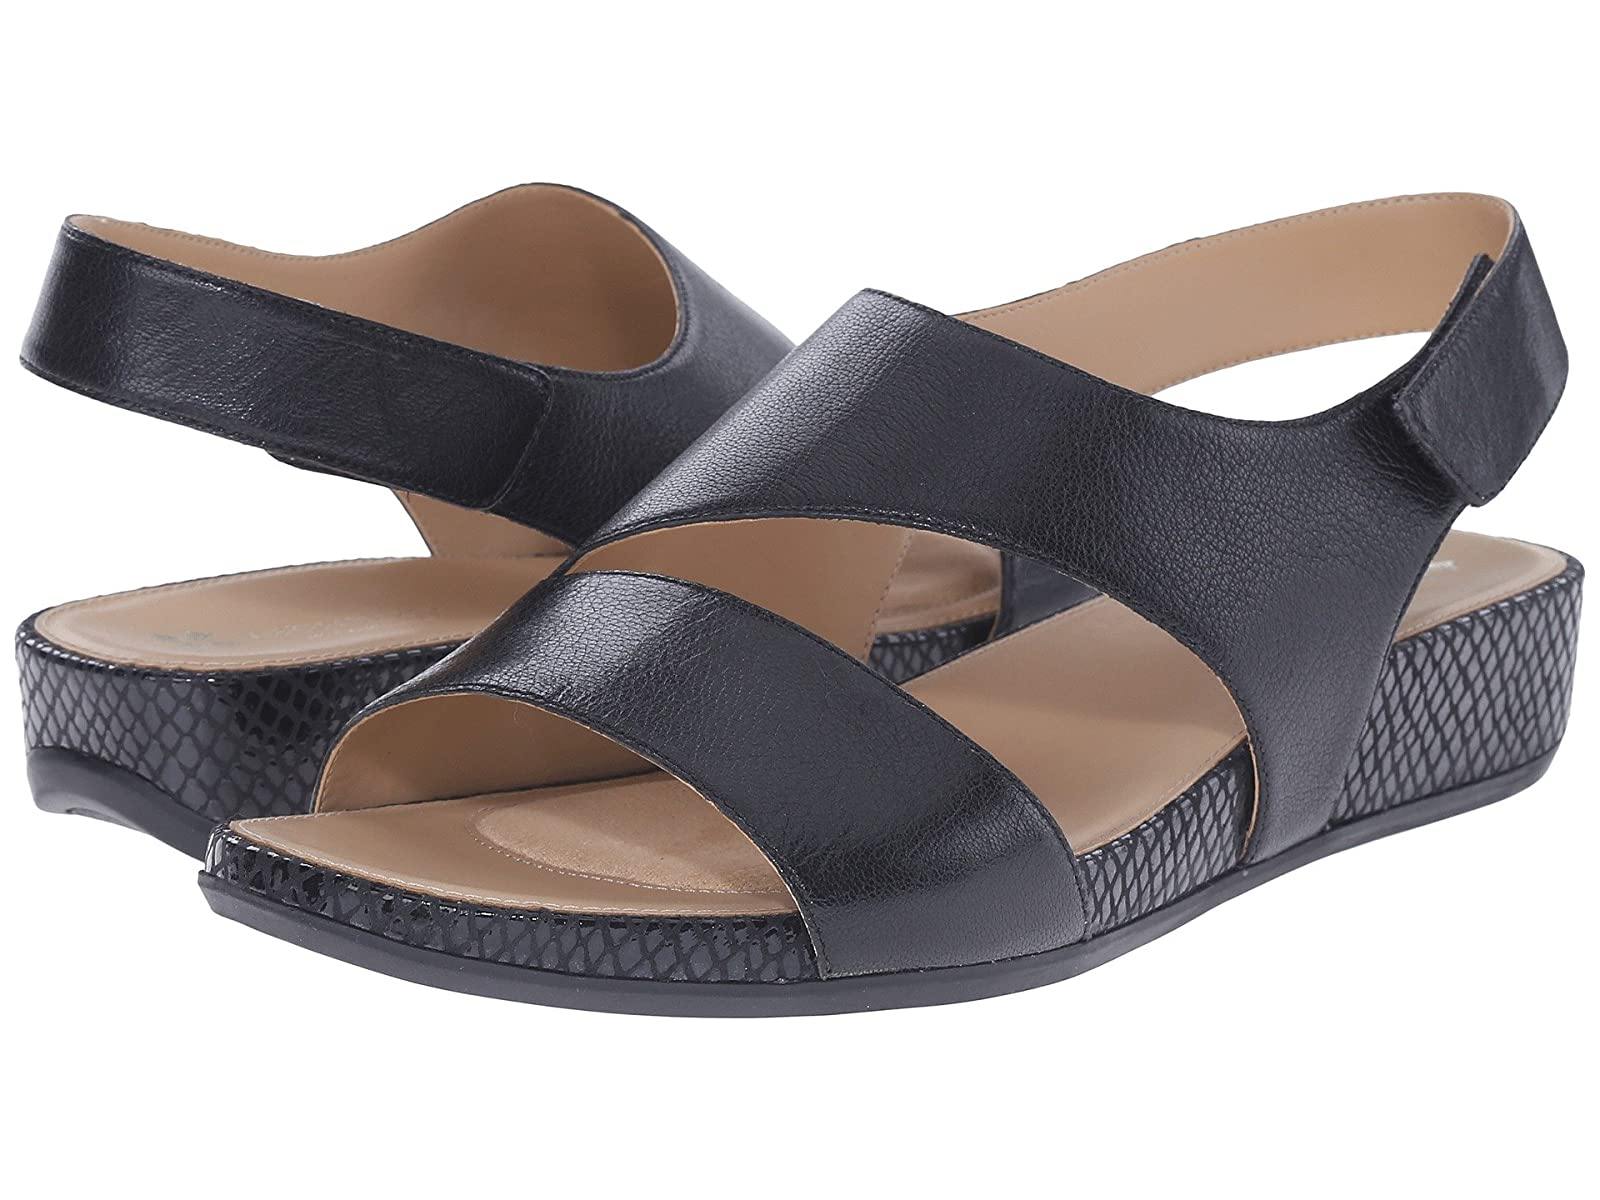 Naturalizer YessicaCheap and distinctive eye-catching shoes